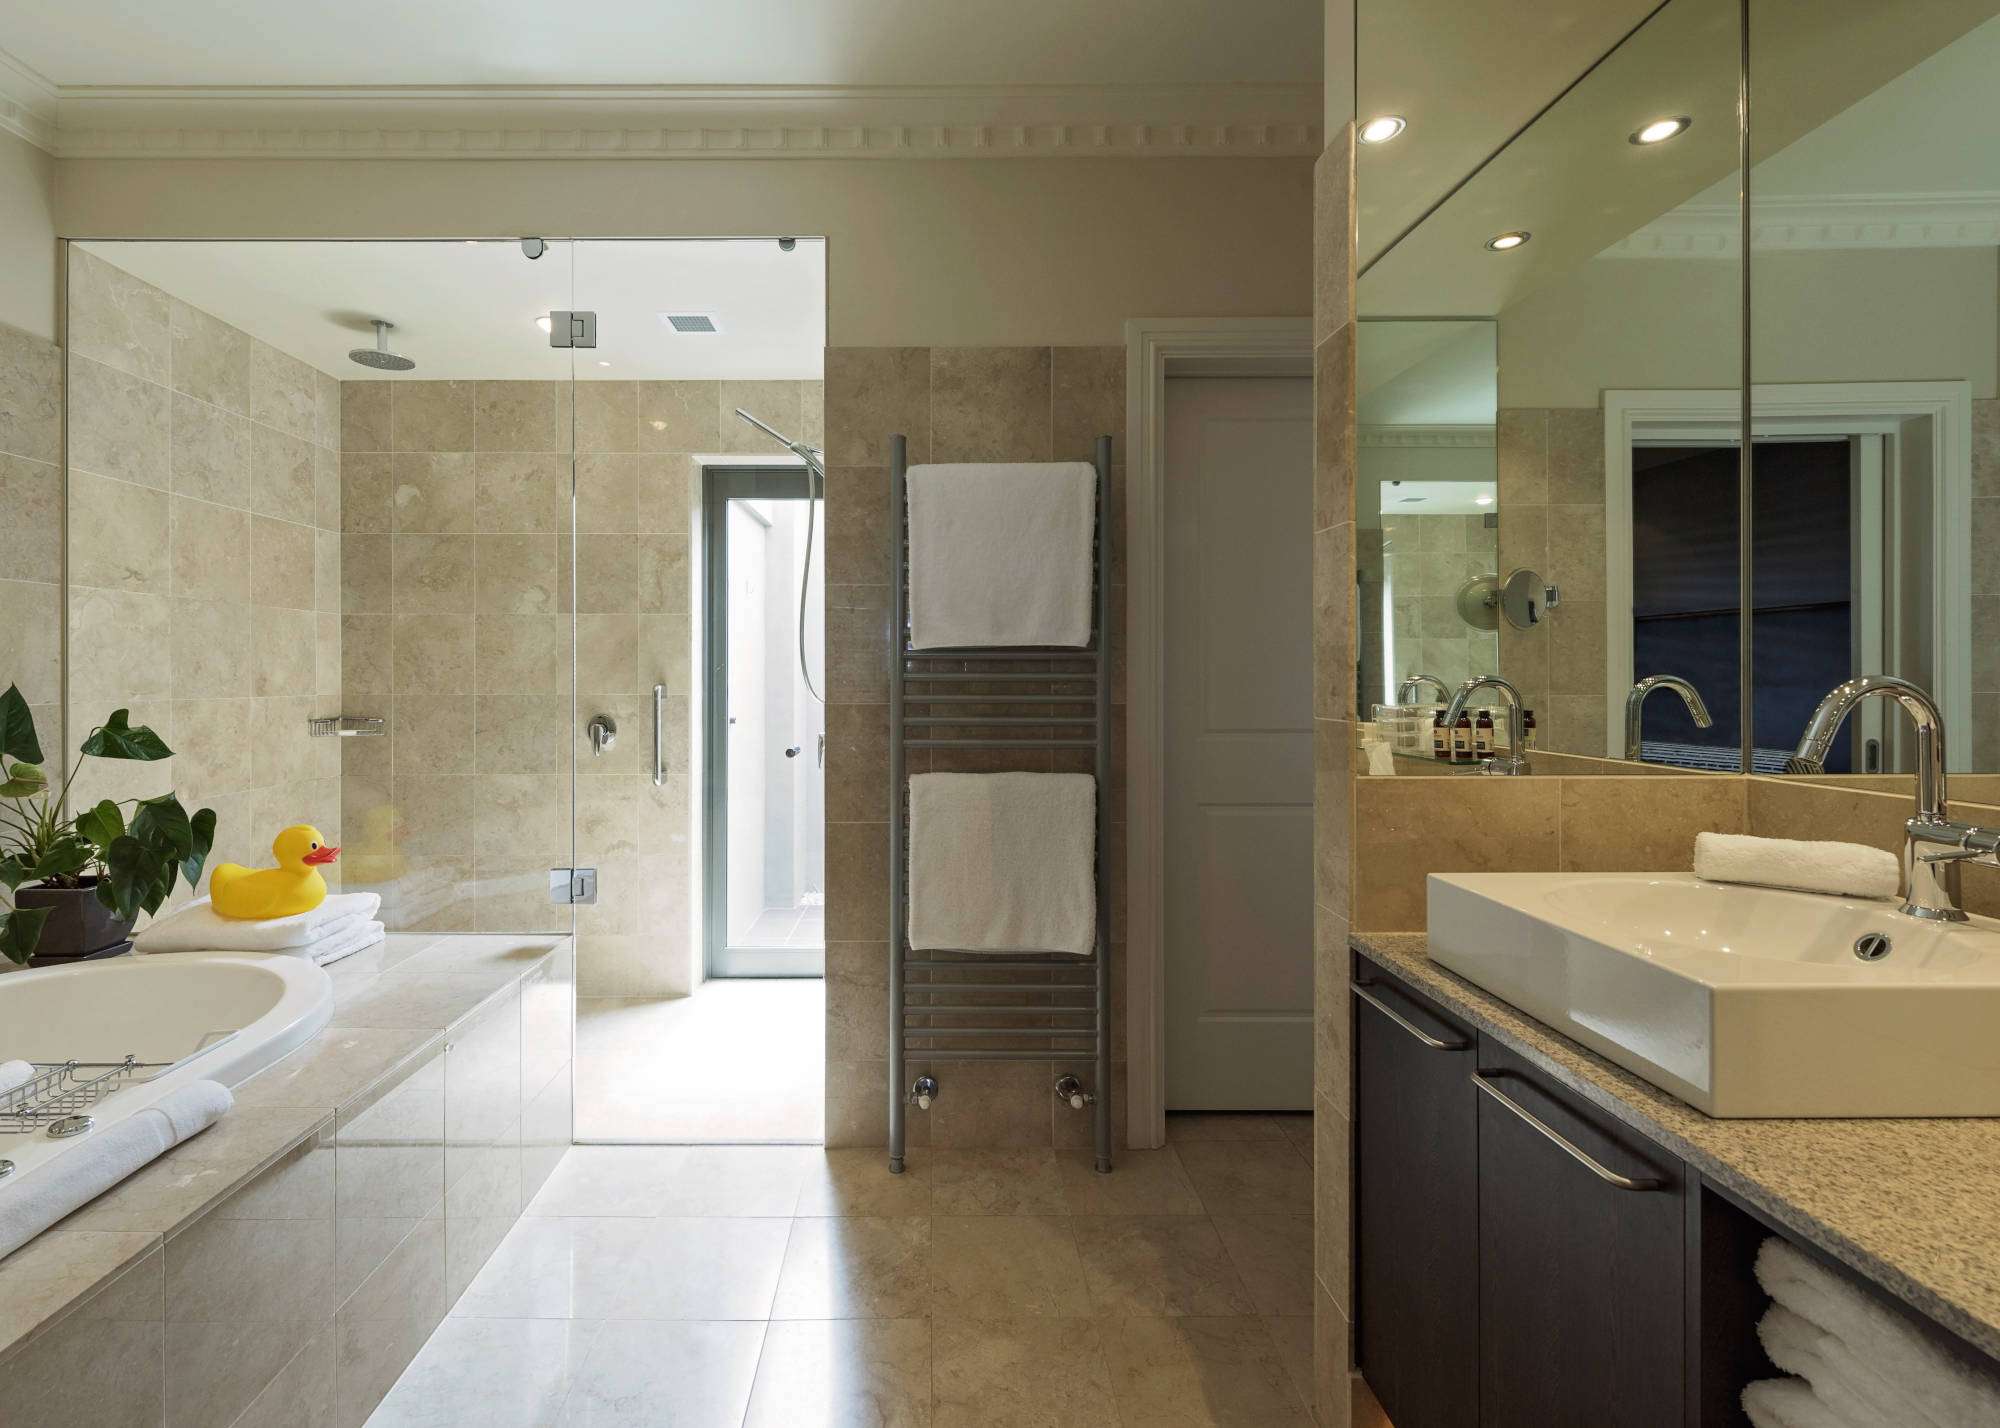 Seppeltsfield Suite Bathroom